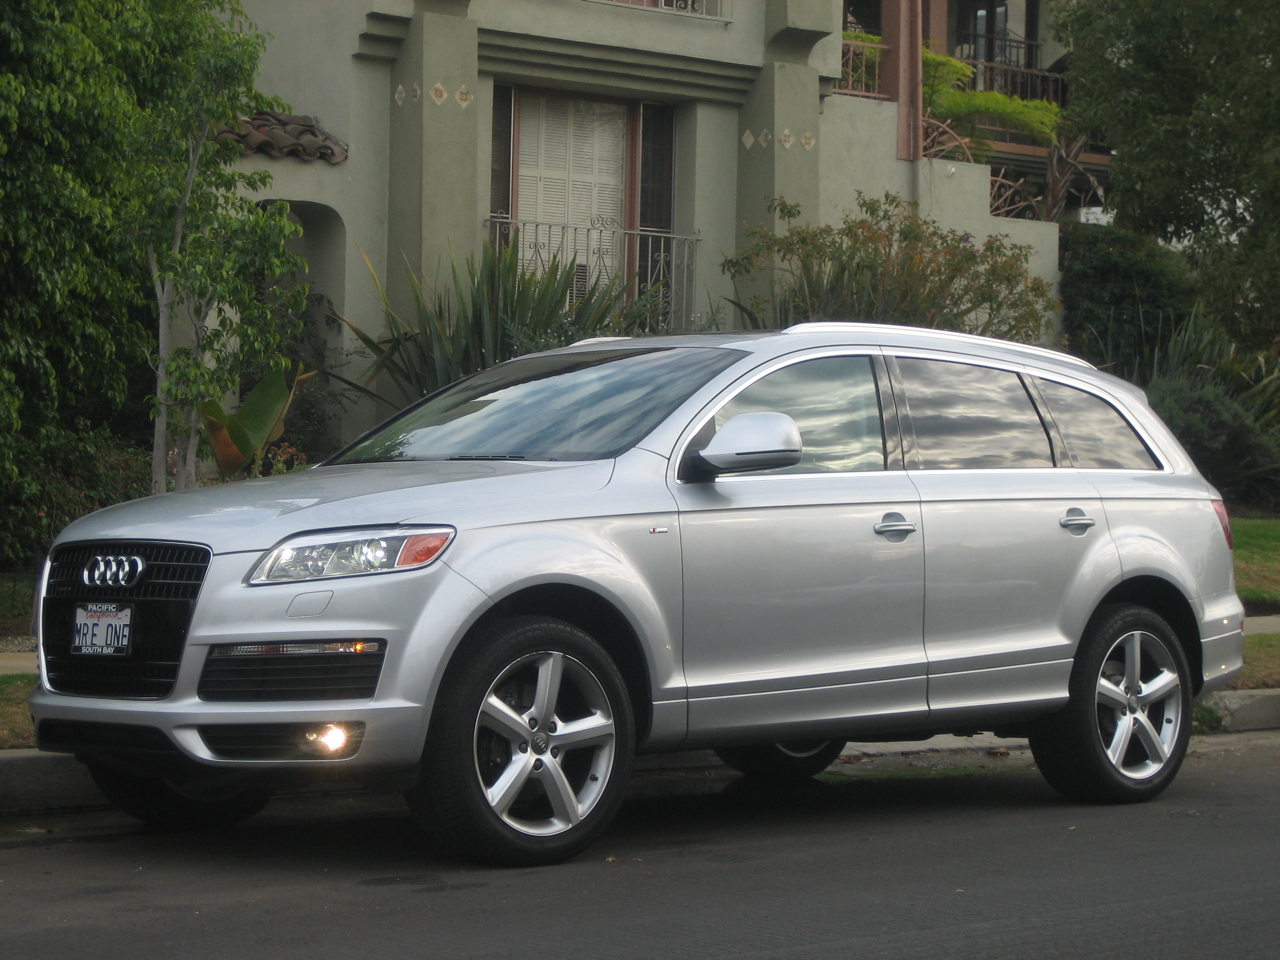 Audi Q5 2007 Review Amazing Pictures And Images Look